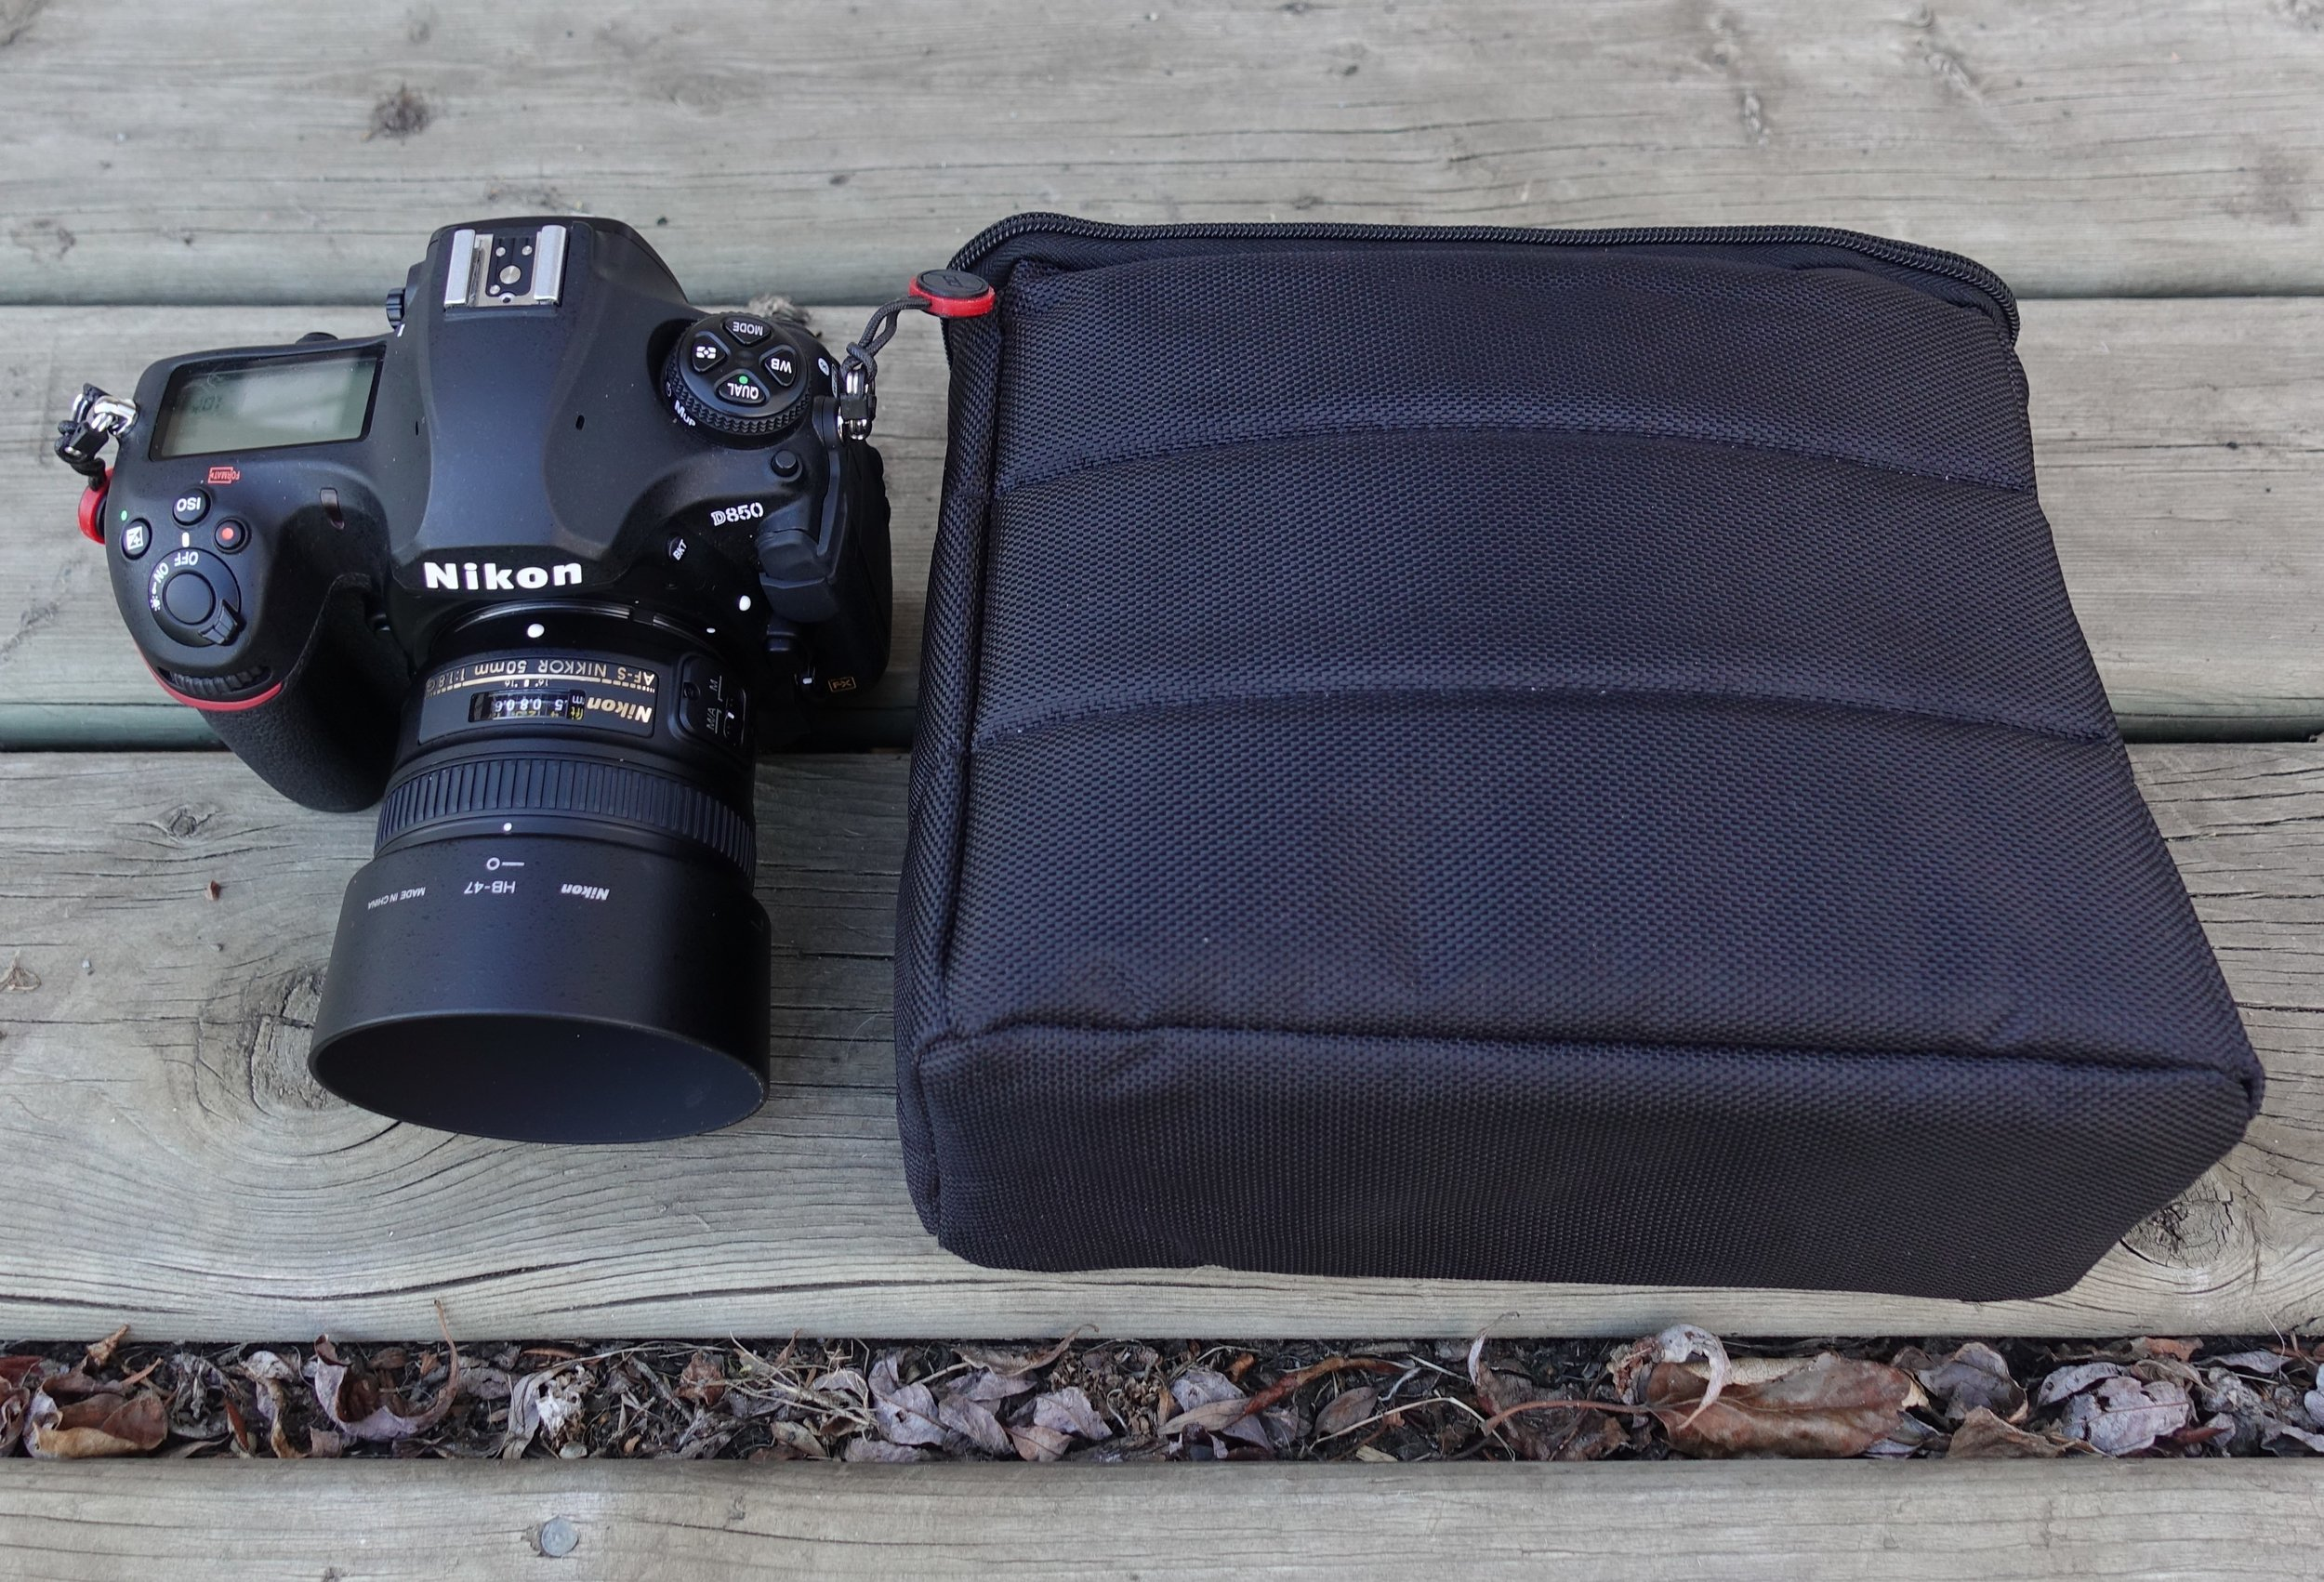 The Chamonix in its case, next to my DSLR for size